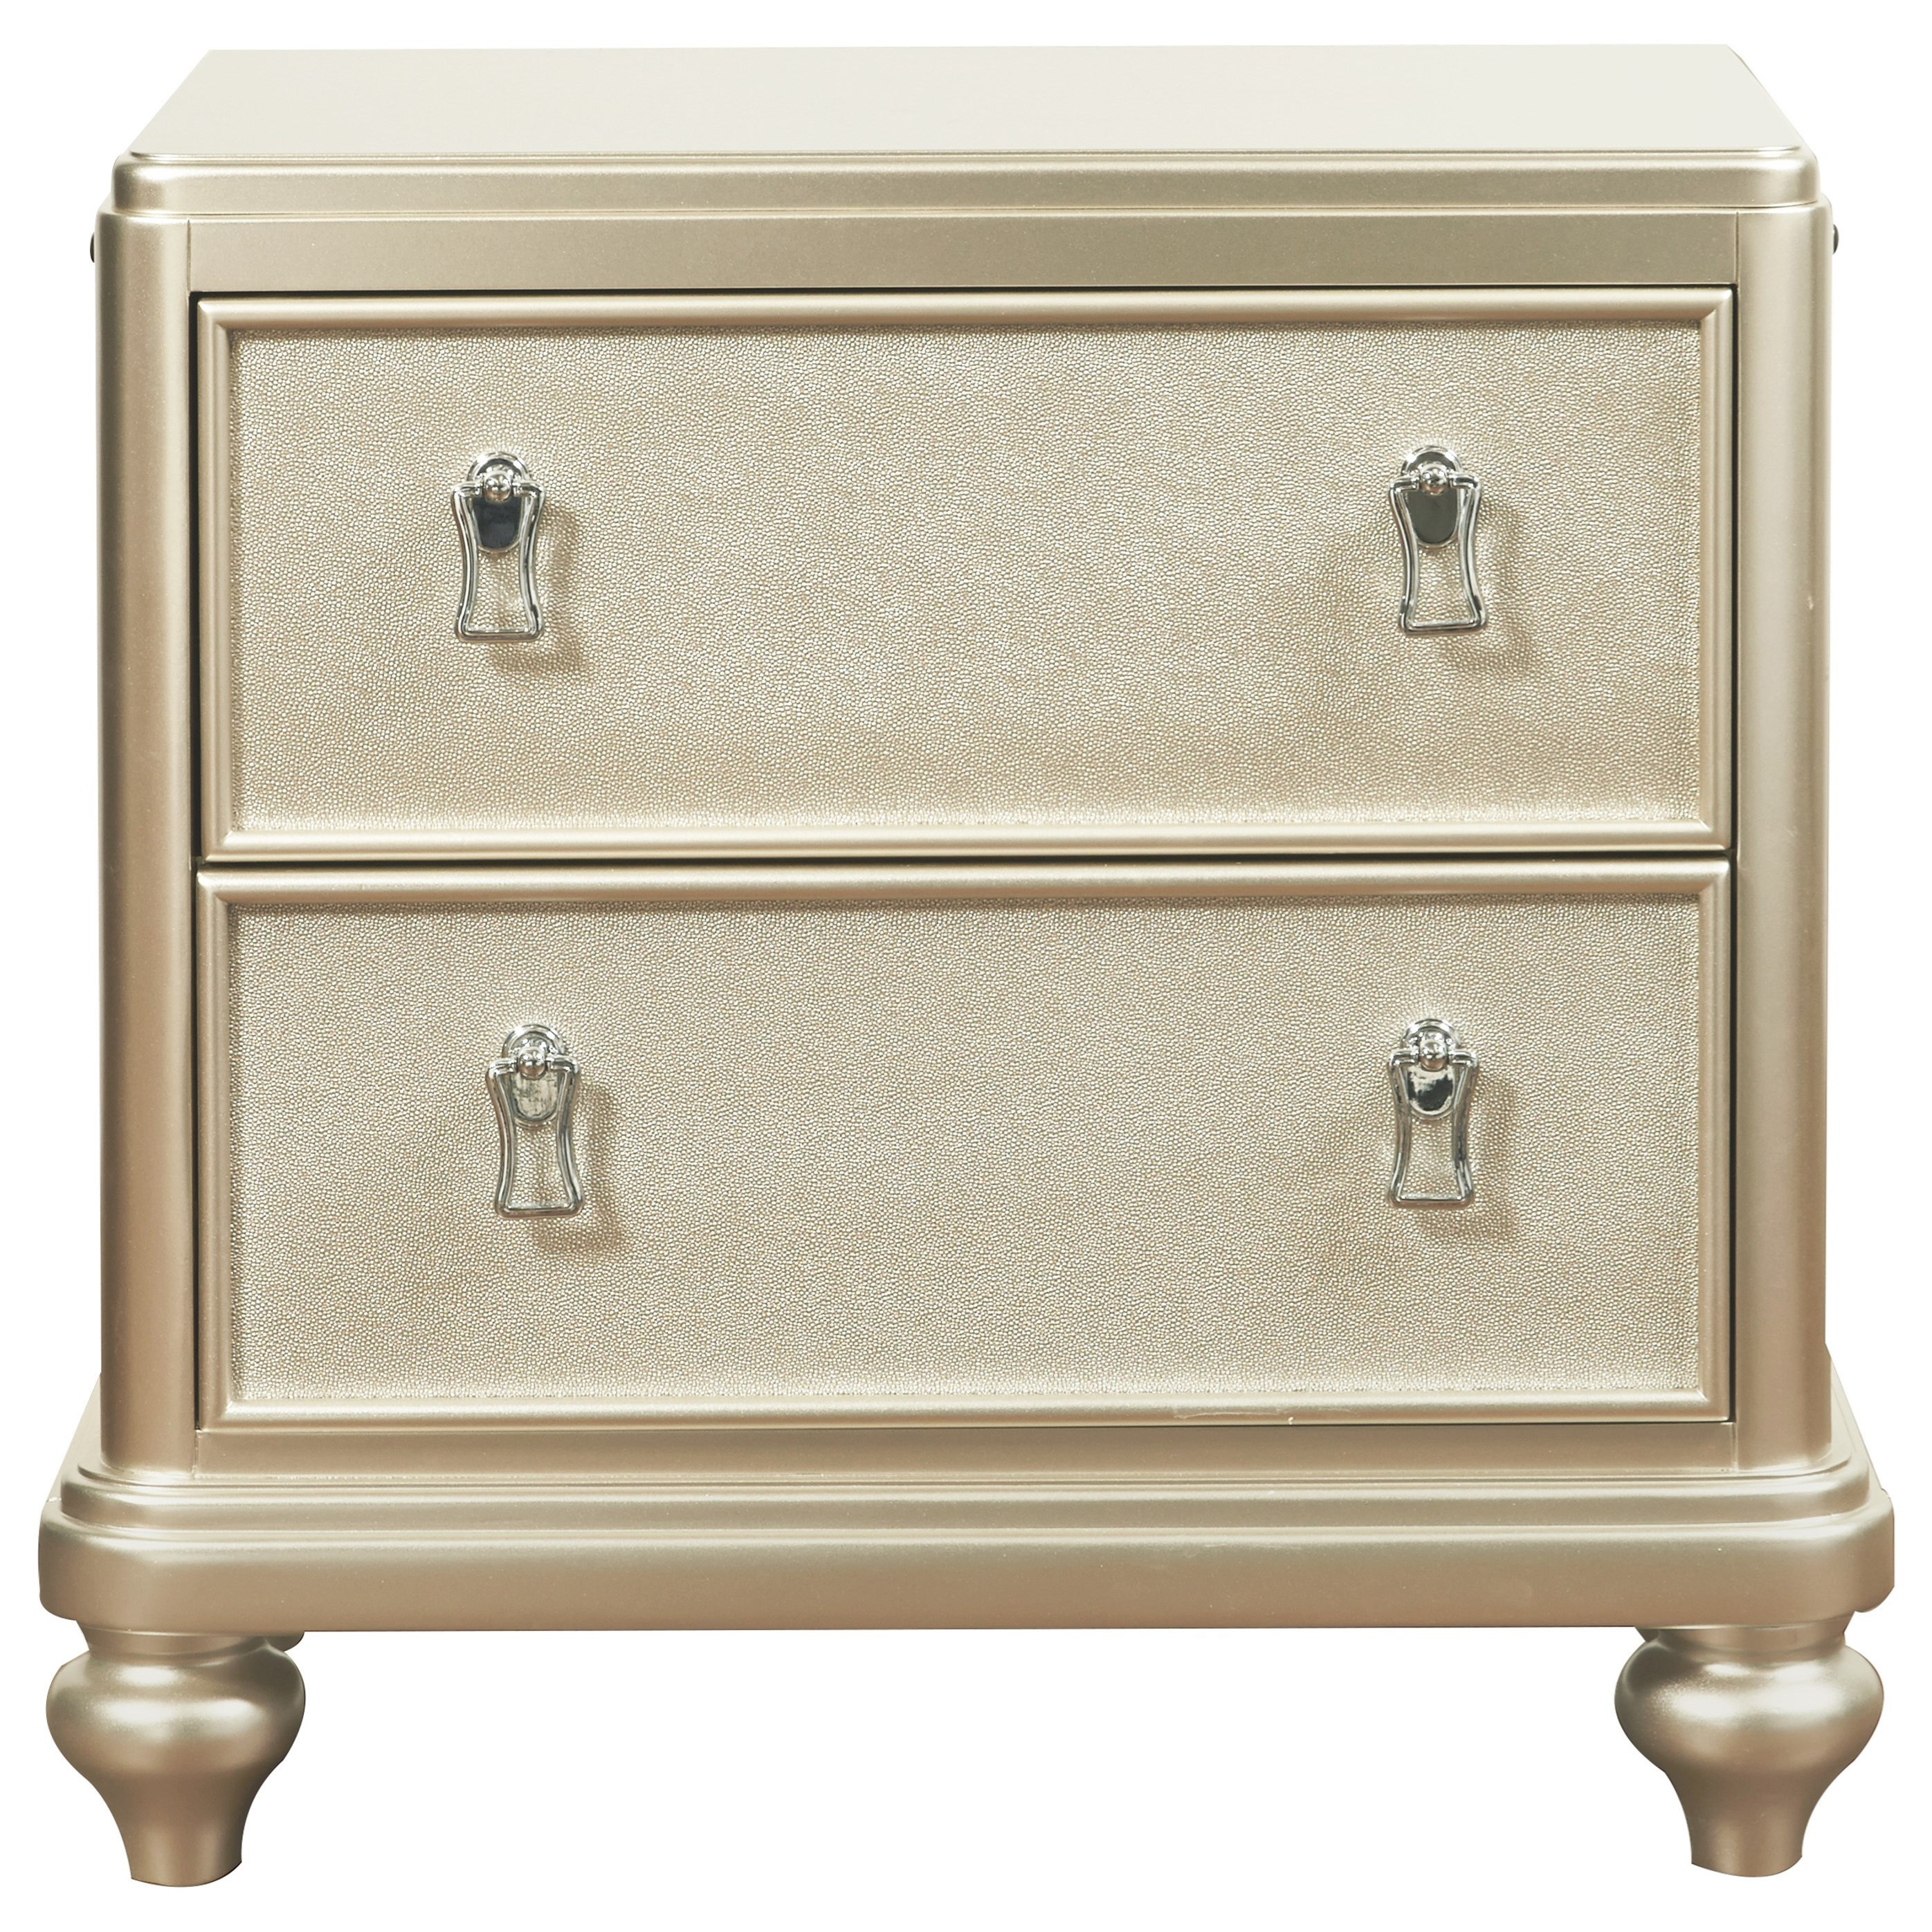 Morris Home Furnishings South Beach South Beach Nightstand - Item Number: 8808-050